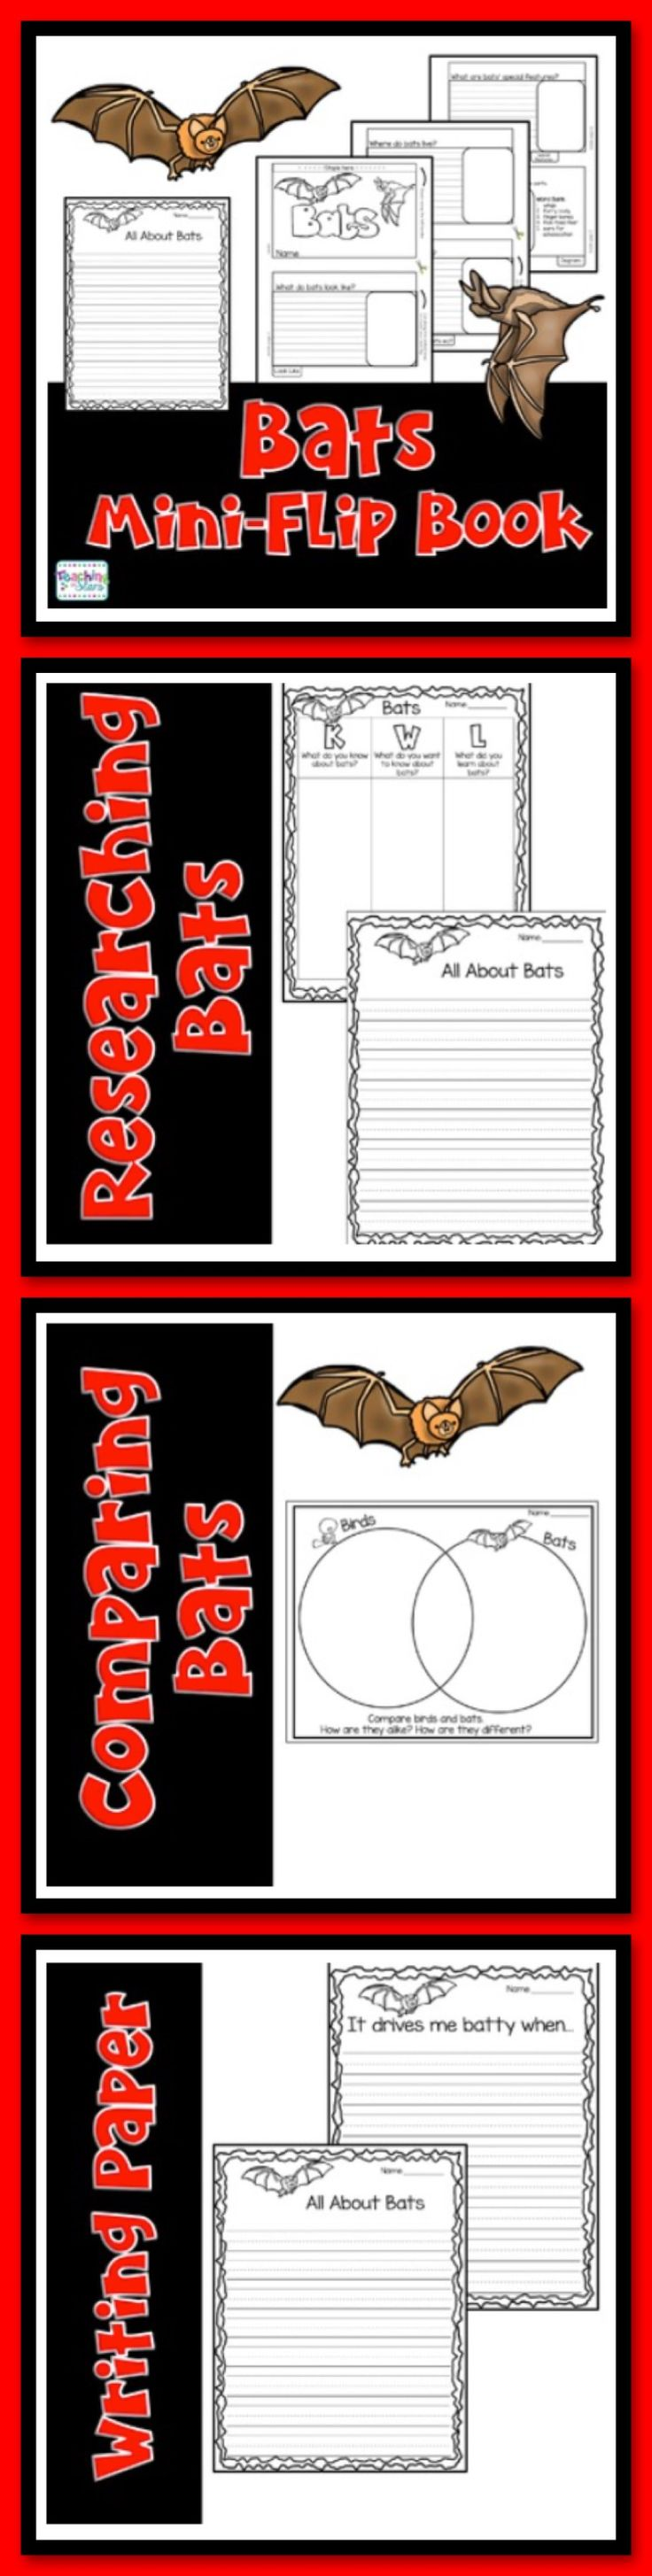 Bats Mini-Book provides a graphic organizer for students to use while learning about bats. Students will collect information on Bats and record their research in their mini-books. This organizer will help students make a final piece of informational writing using the information they have collected.   Materials Included:  Bats Mini-Book 2 Bat Writing Prompts on Lined Paper: It drives me Batty when... and All About Bats  Venn Diagram Birds and Bats